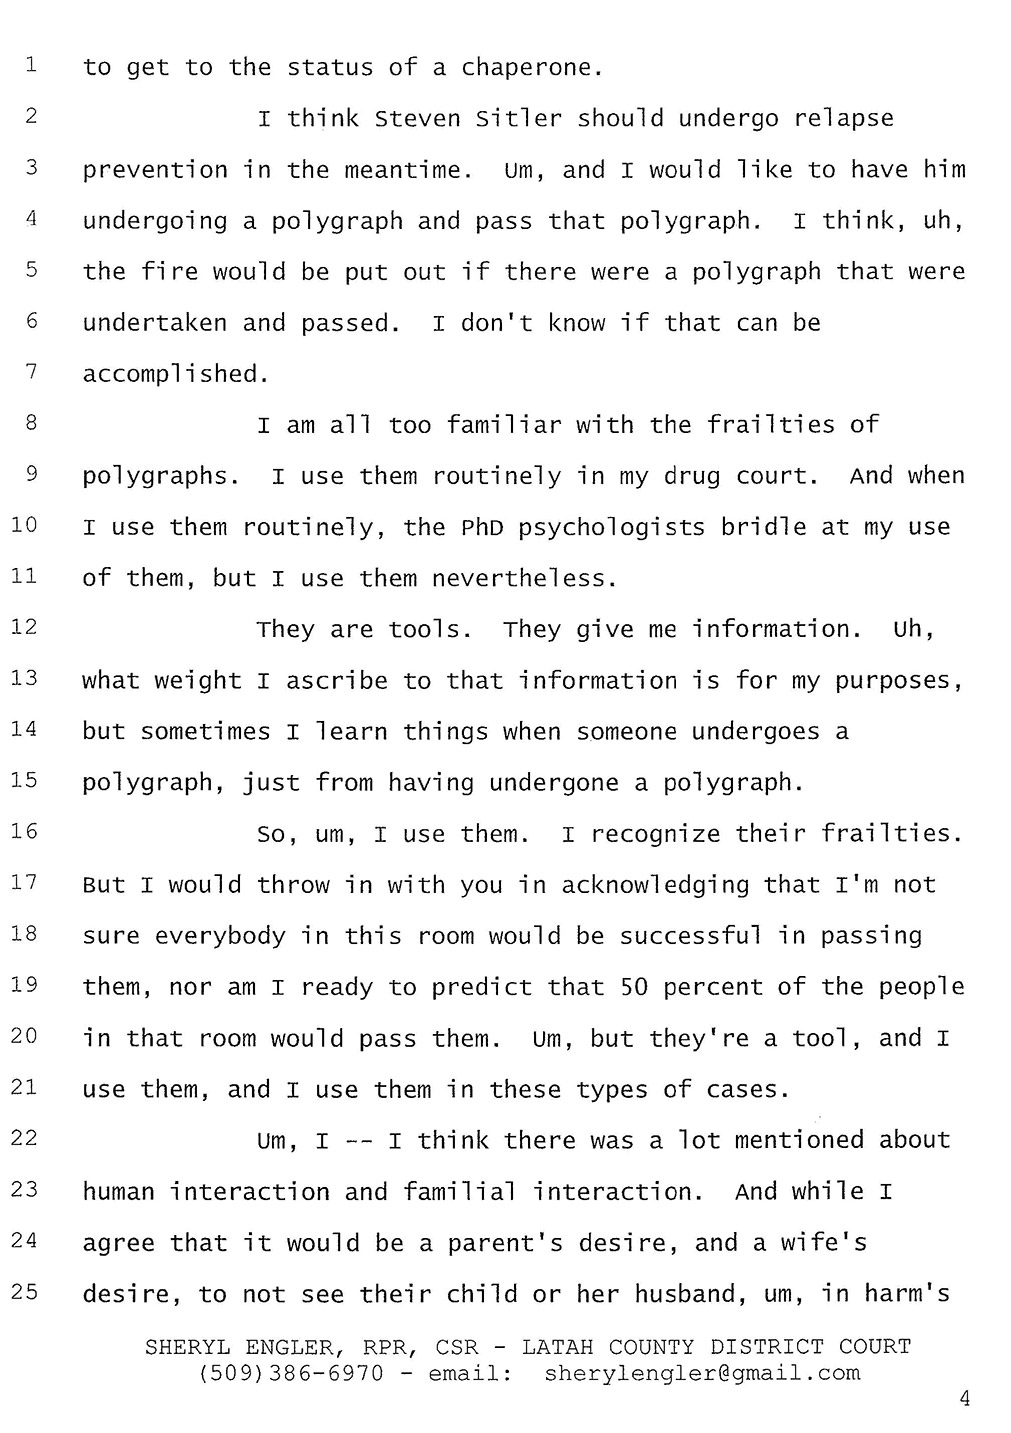 Exhibit B: Excerpted Court Transcript, page 4